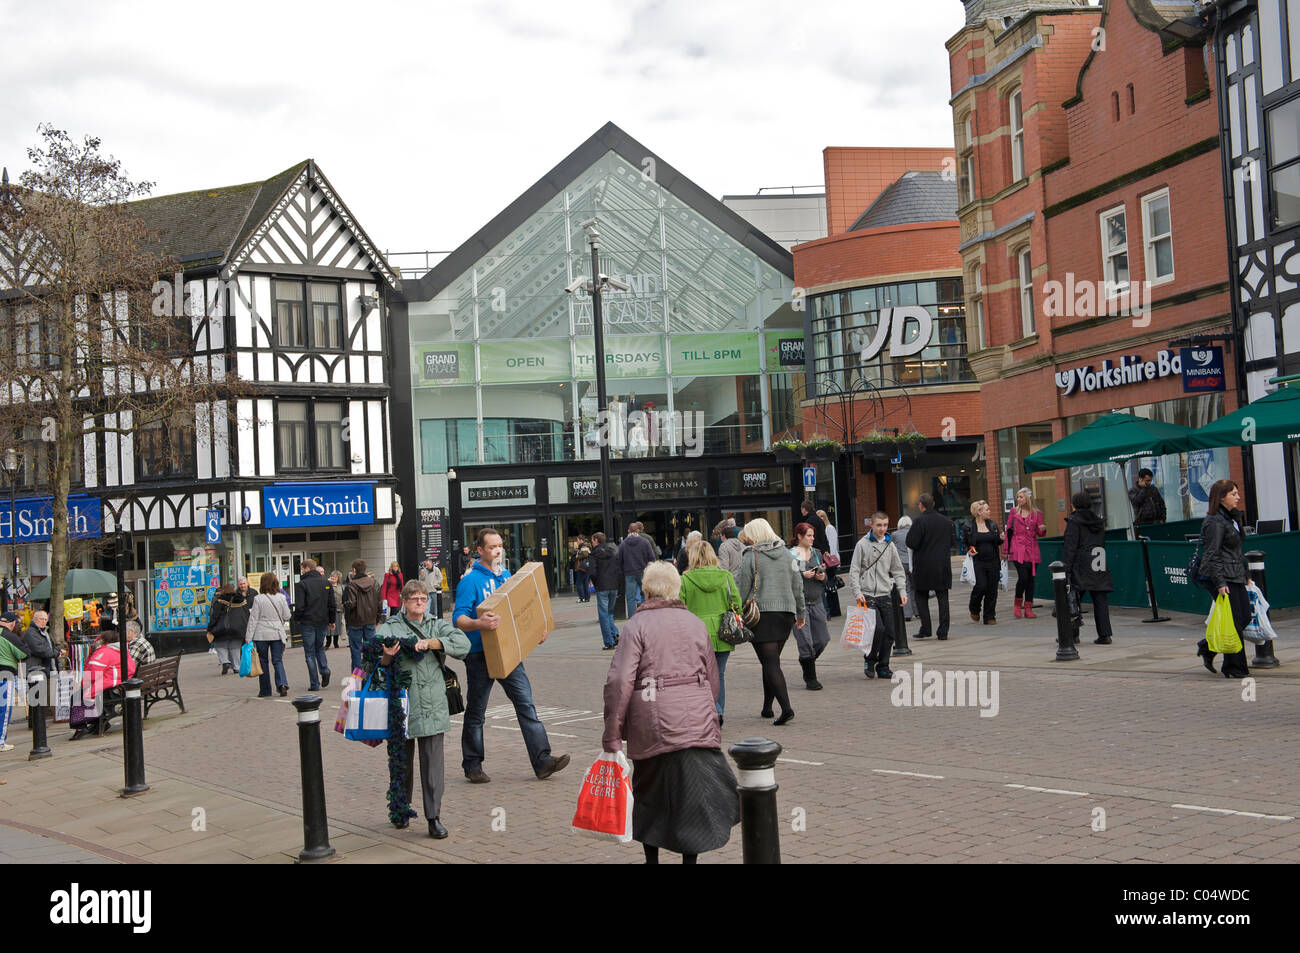 Wigan town centre shoppers - Stock Image